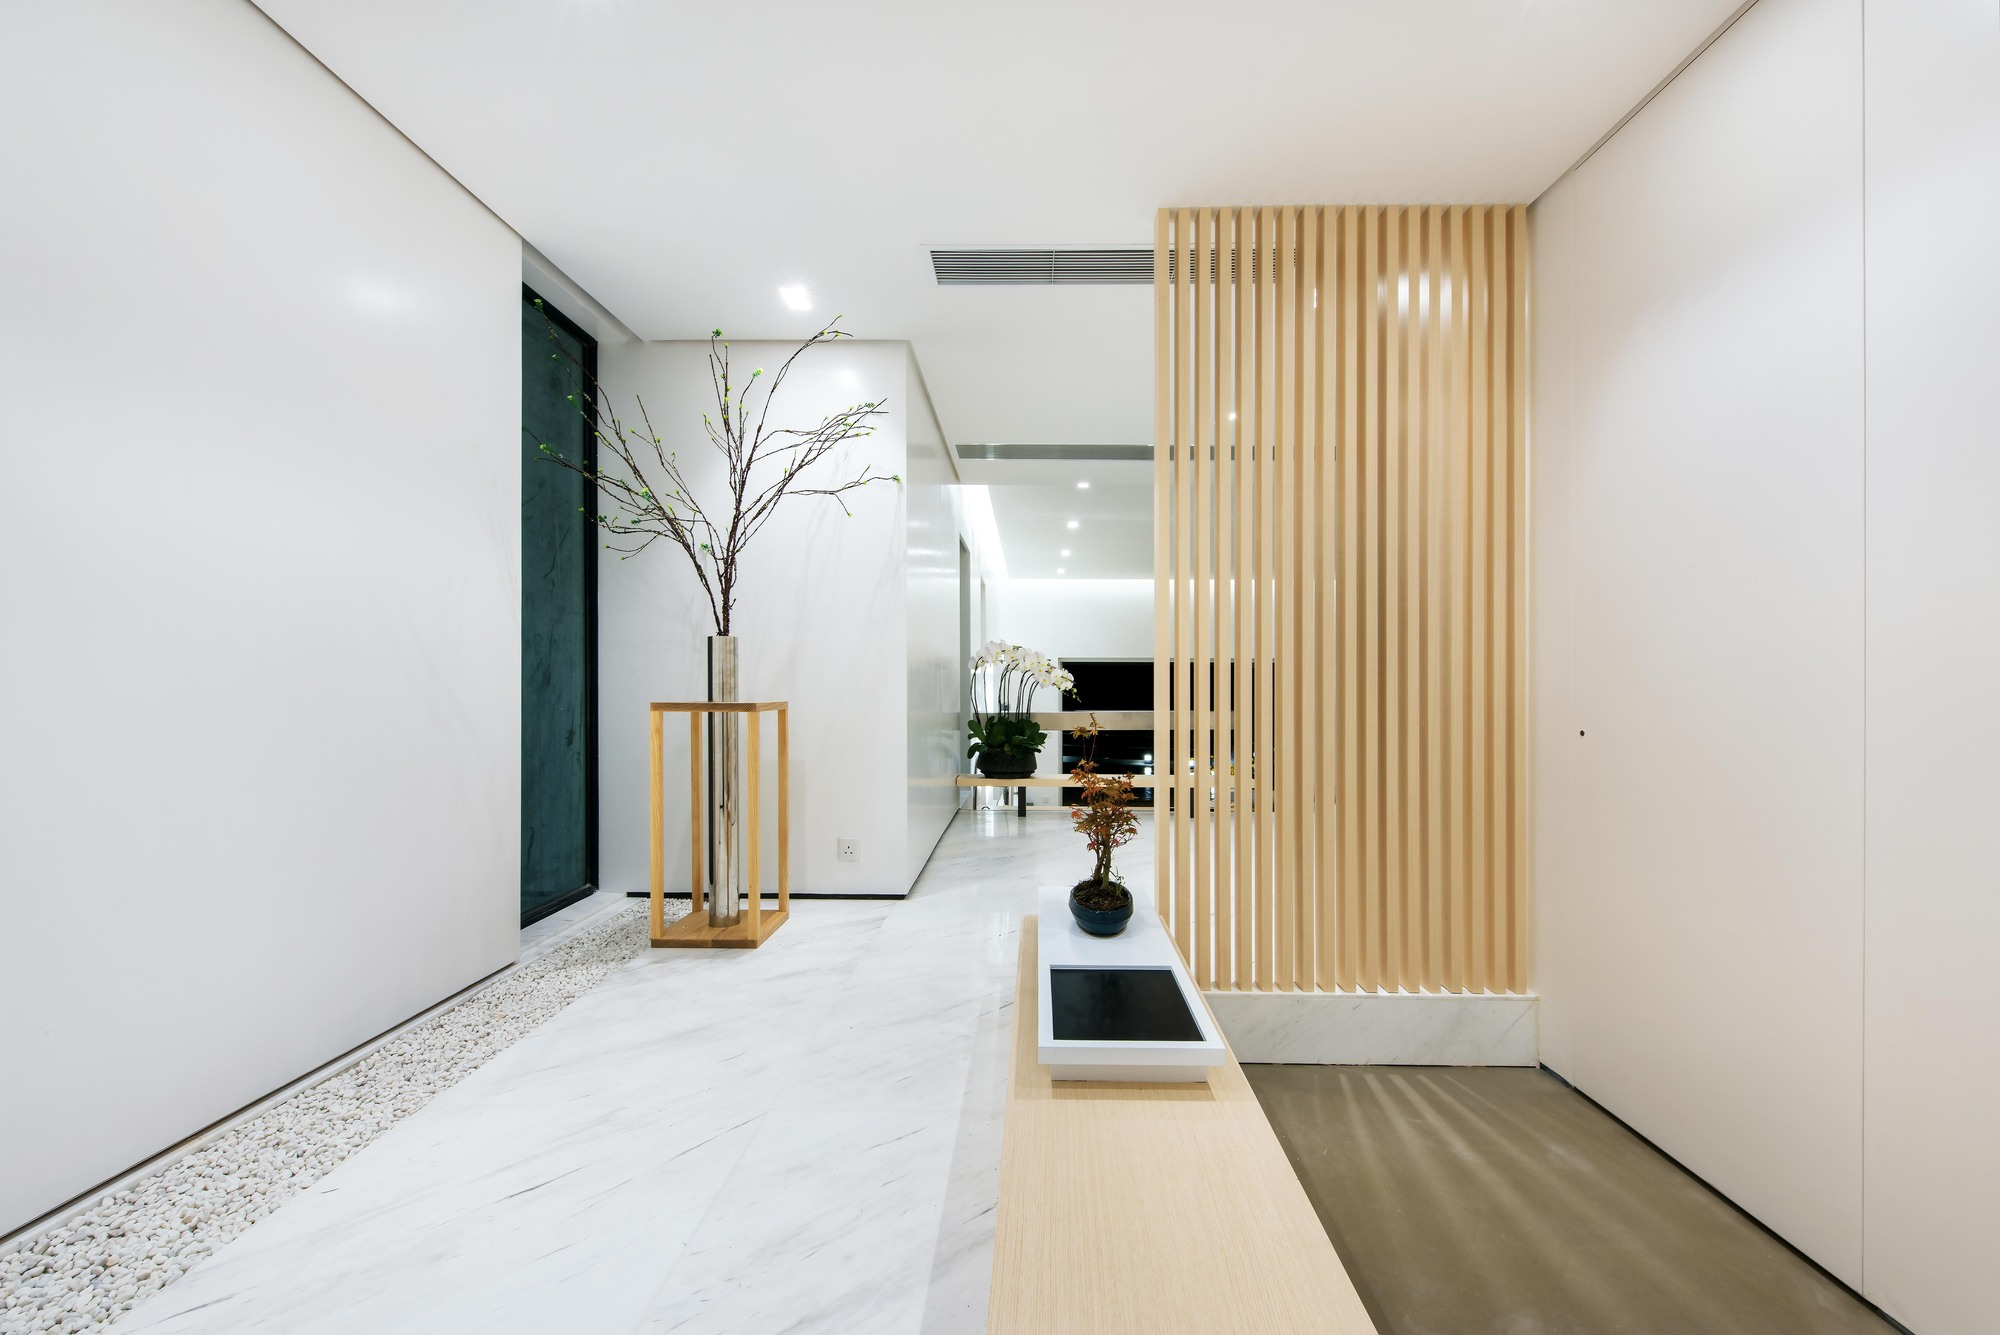 Millimeter interior design Office ArchDaily